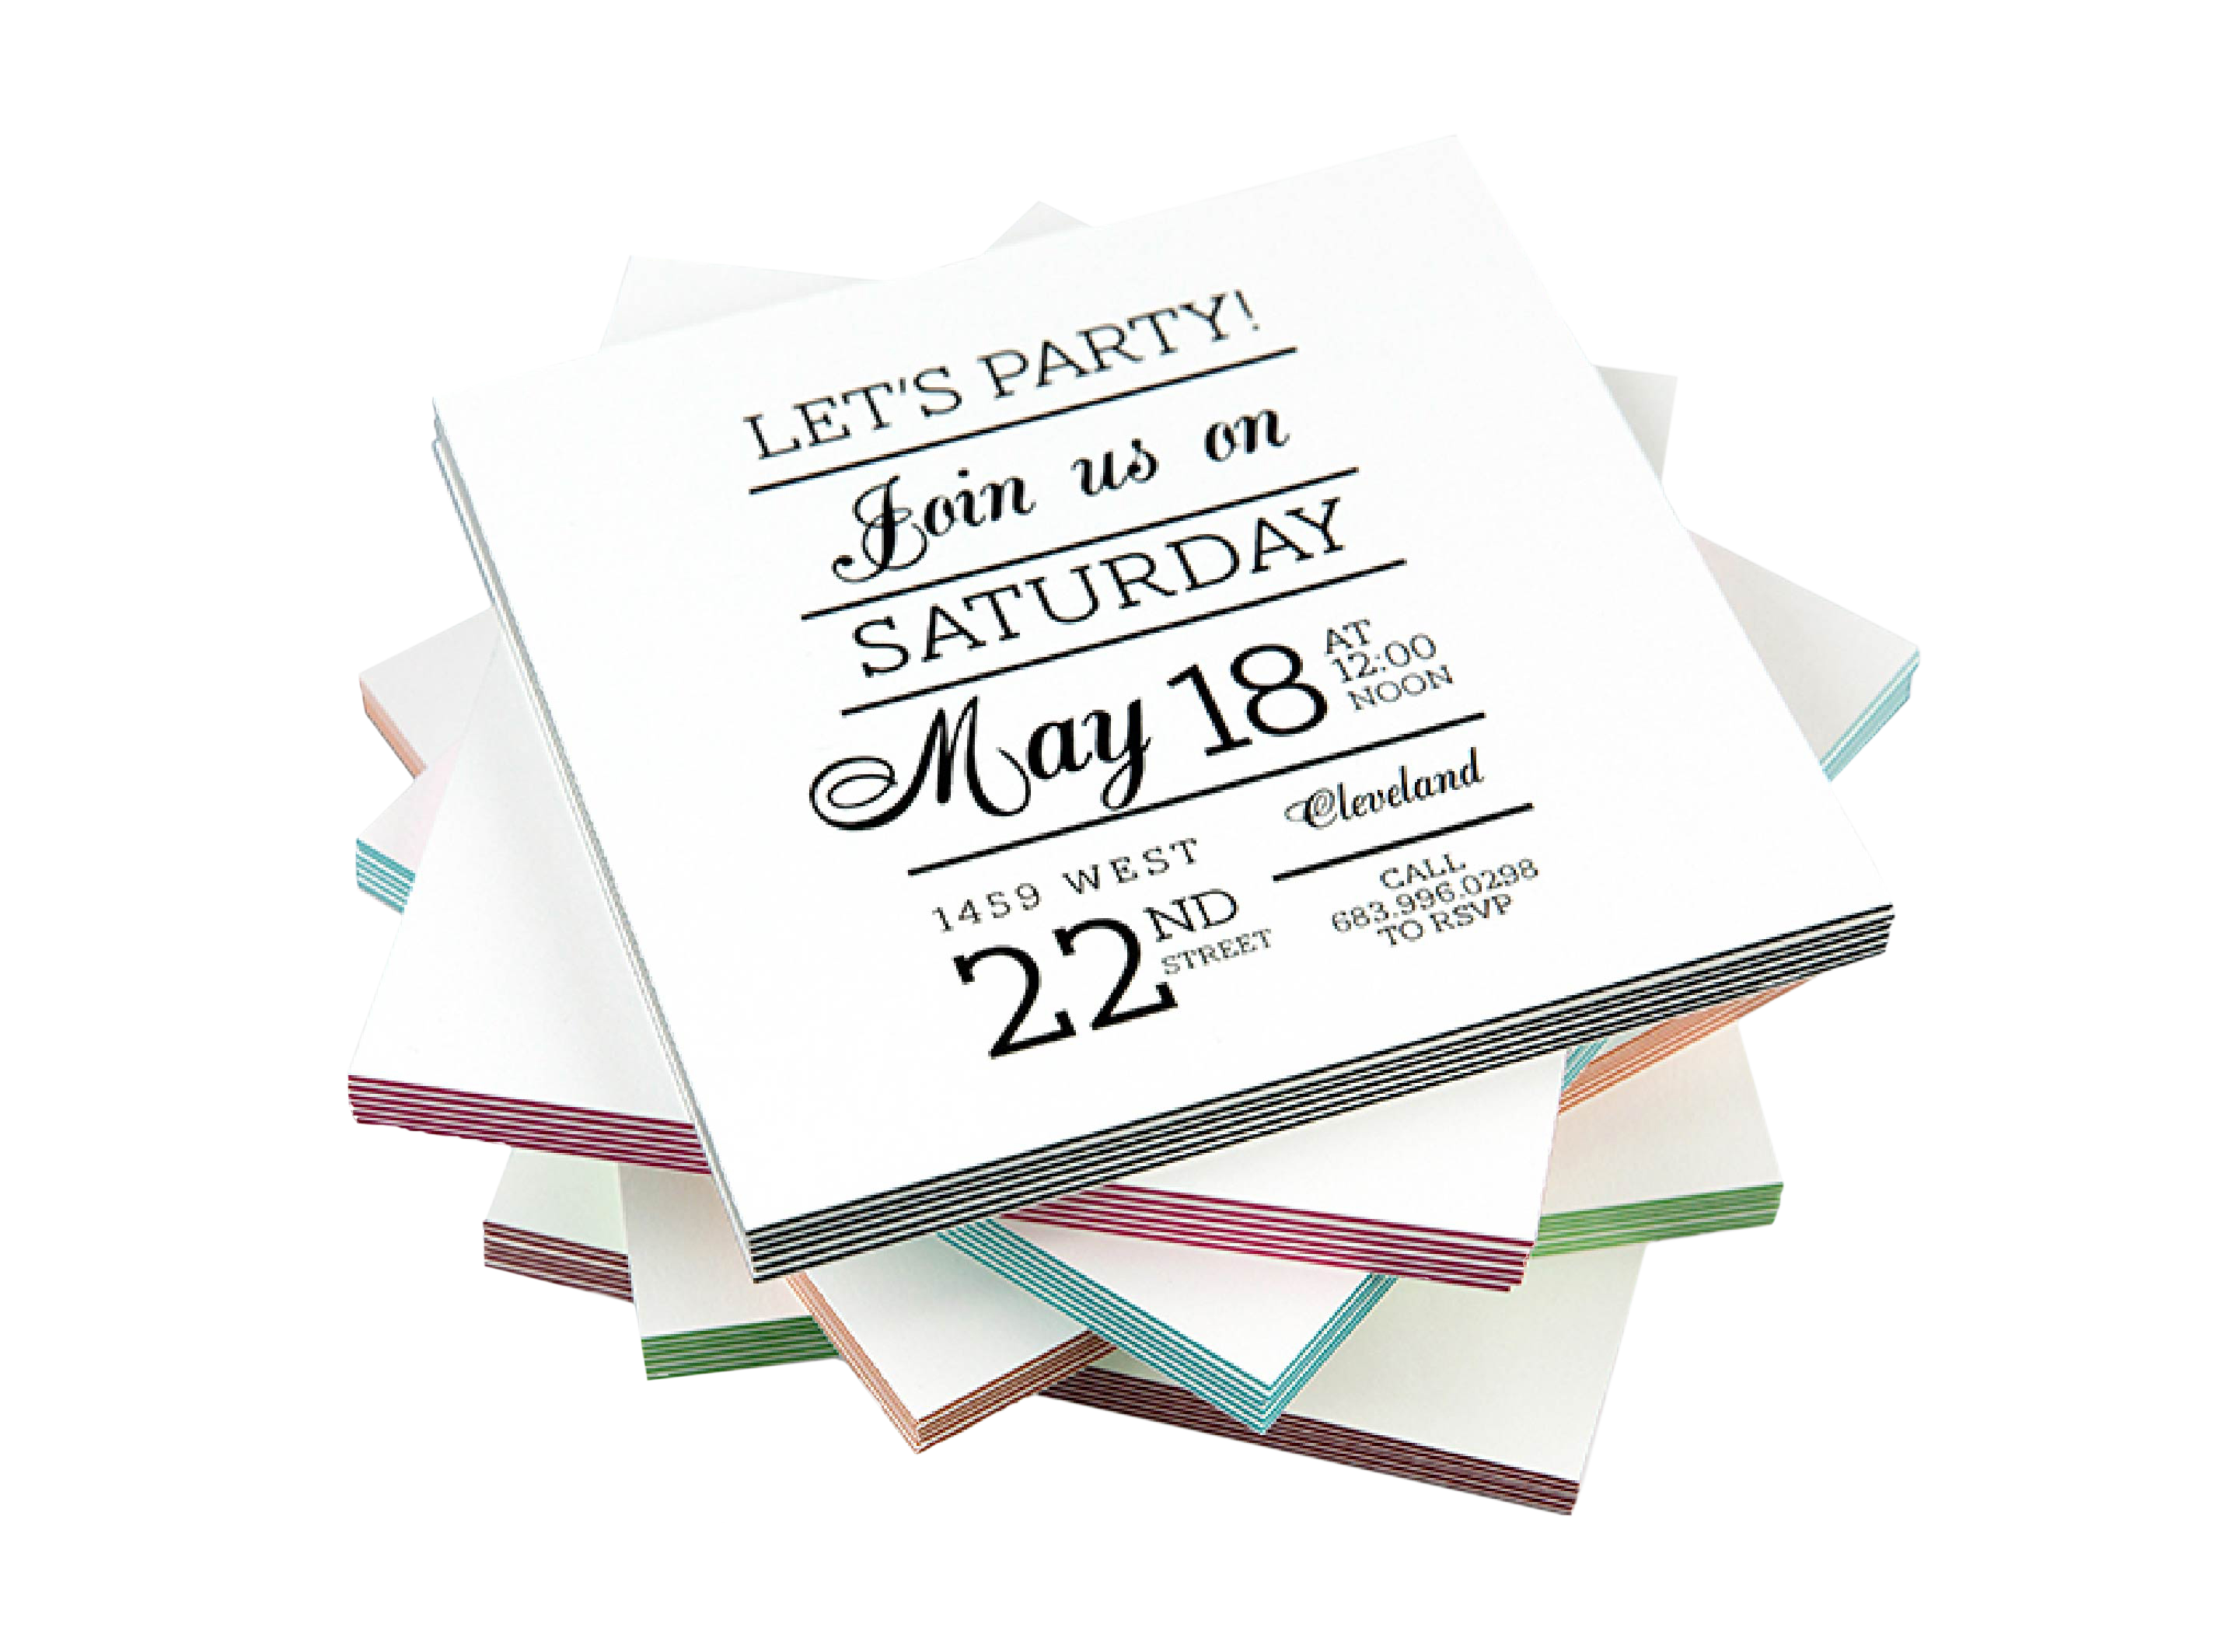 Wedding Invitation Printed on Extra Thick ColorTHICK Cards with 6 different core colors